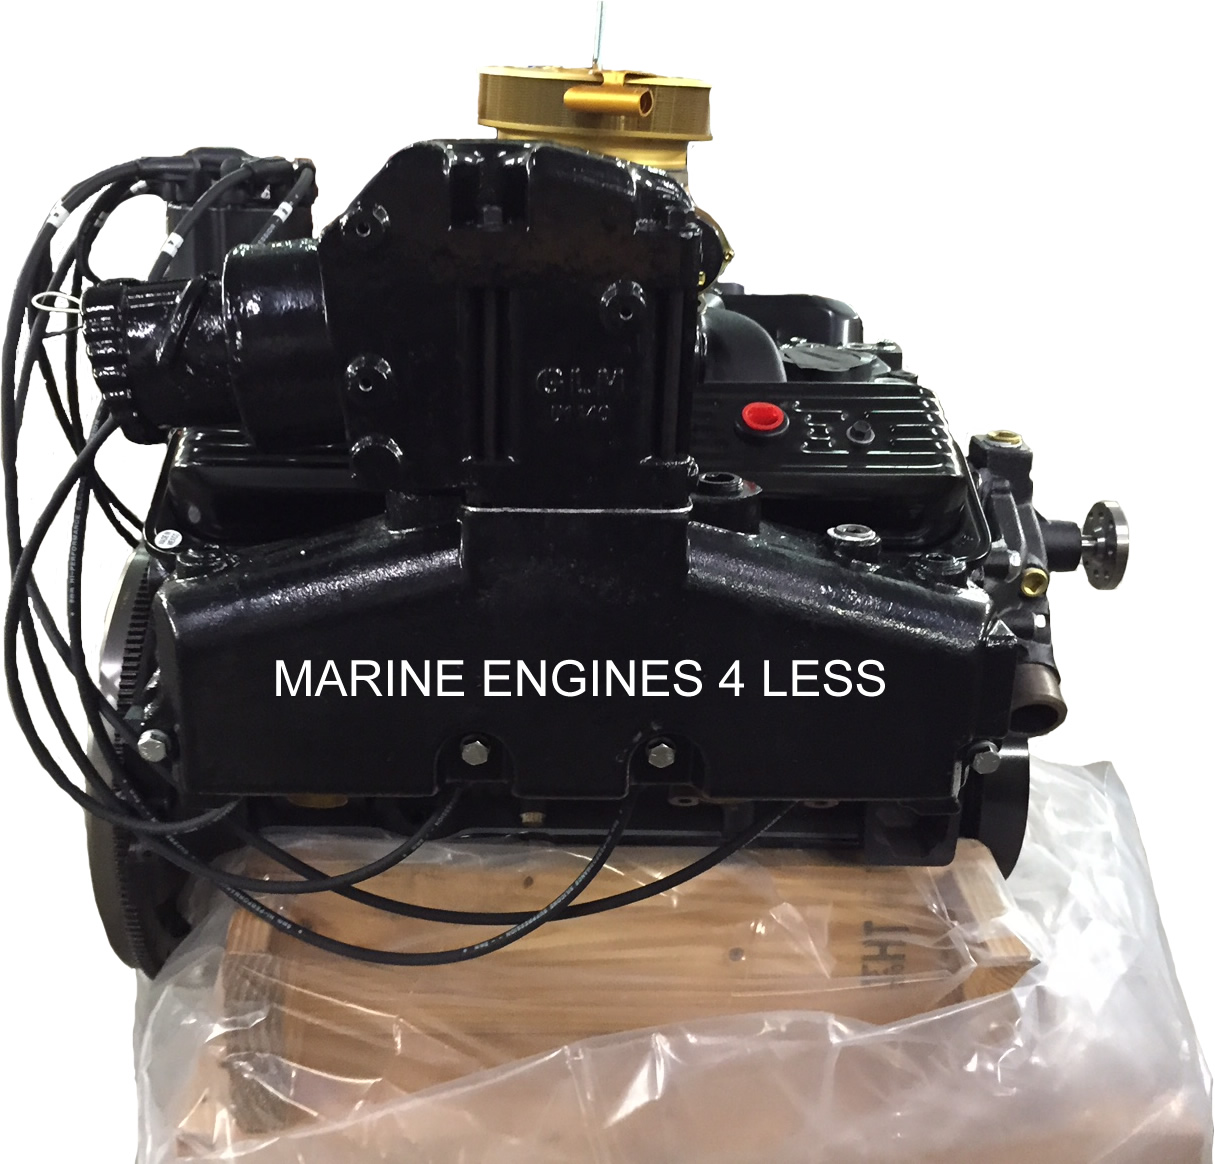 New remanufactured marine engines transmissions for Rebuilt motors and transmissions